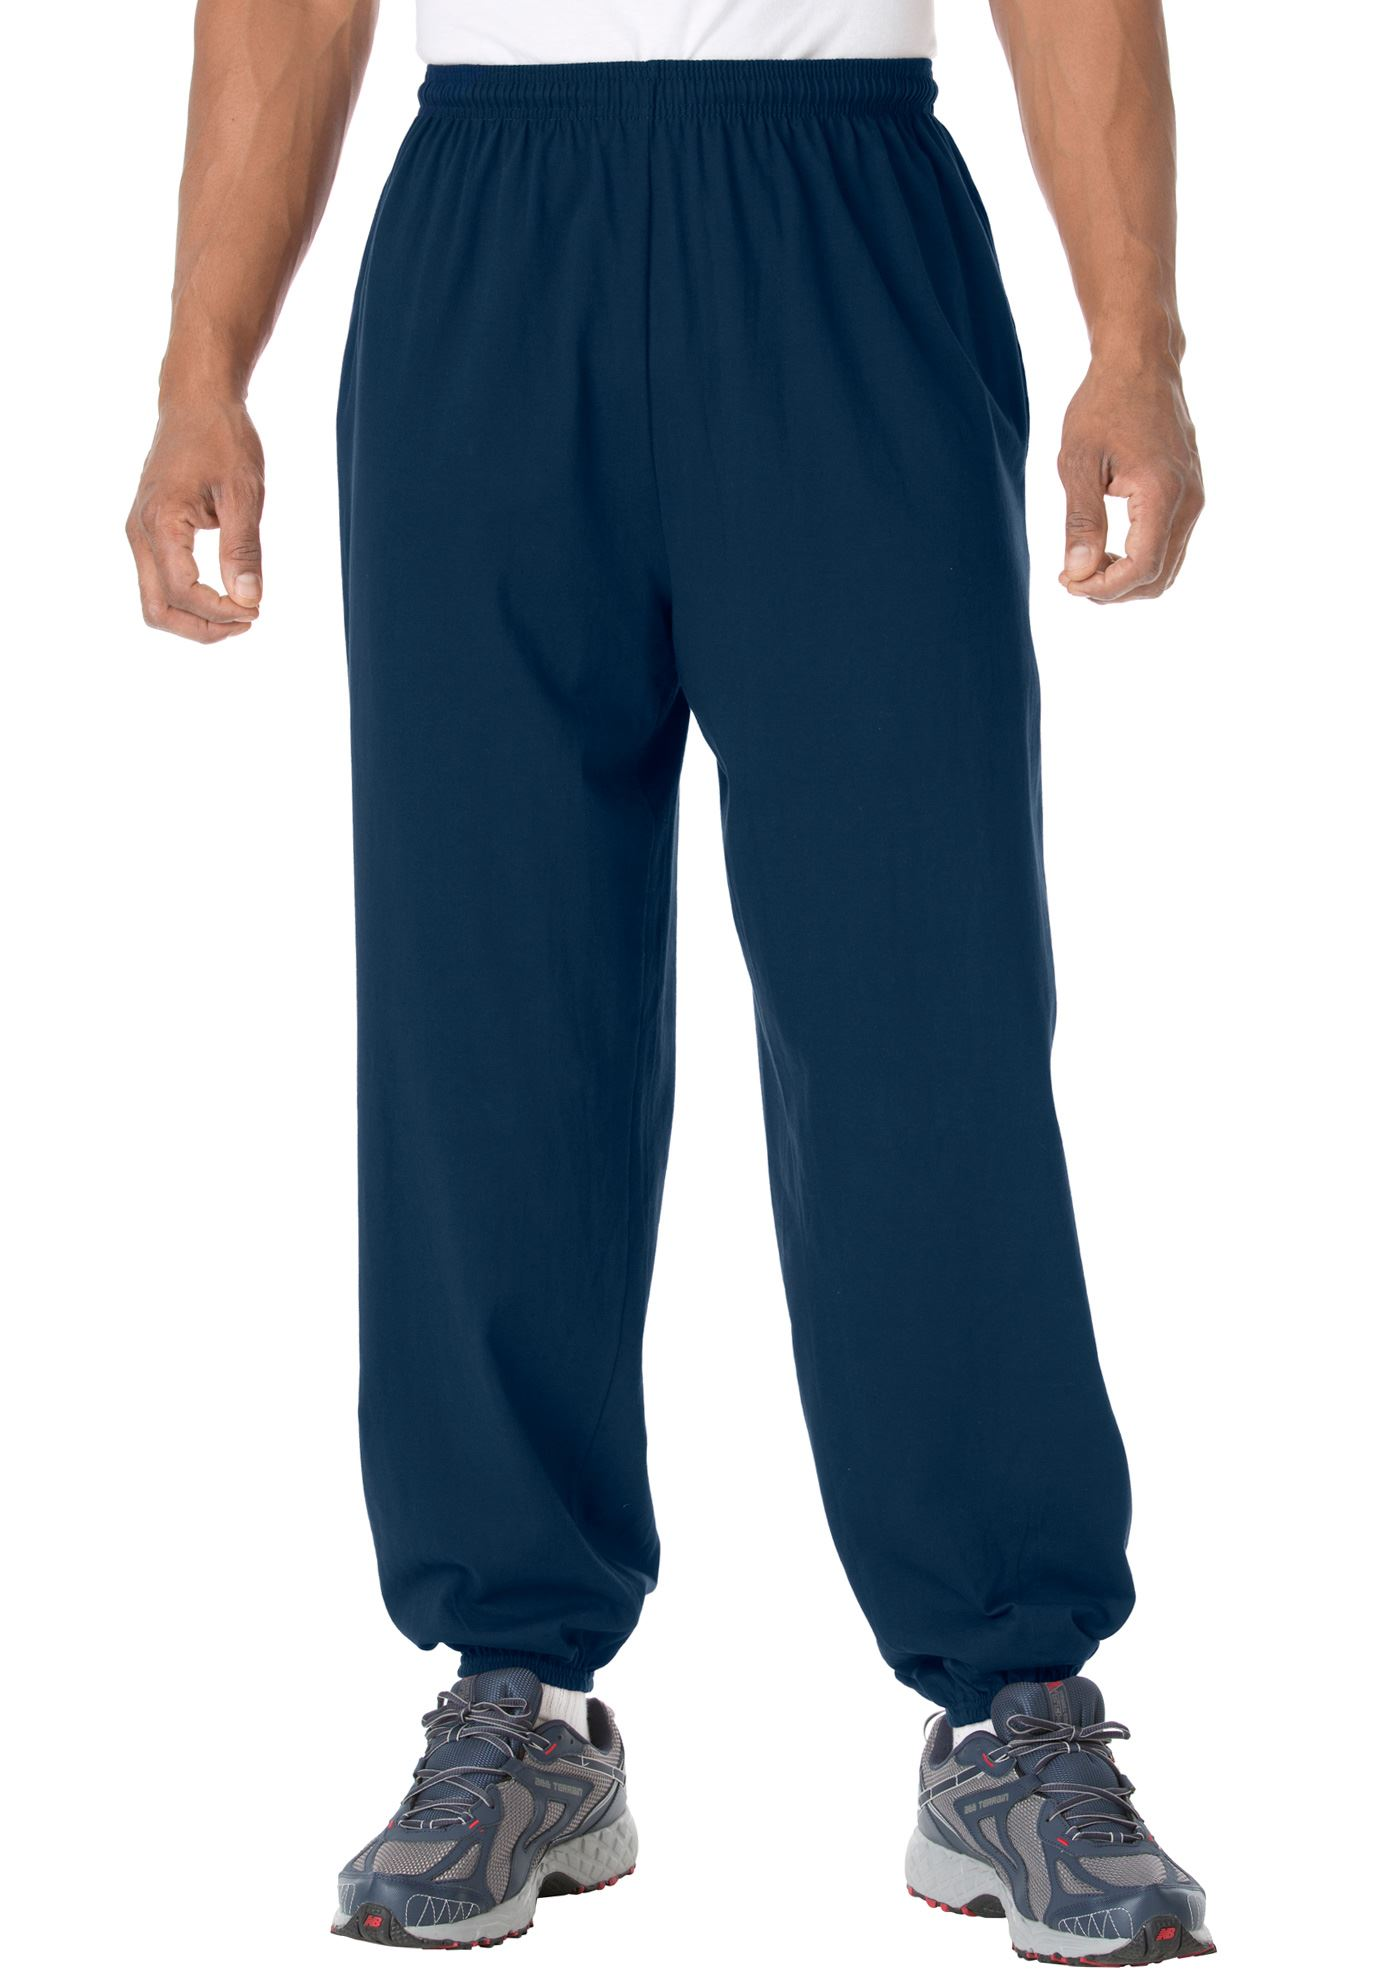 Kingsize Men's Big & Tall Lightweight Elastic Cuff Sweatpants